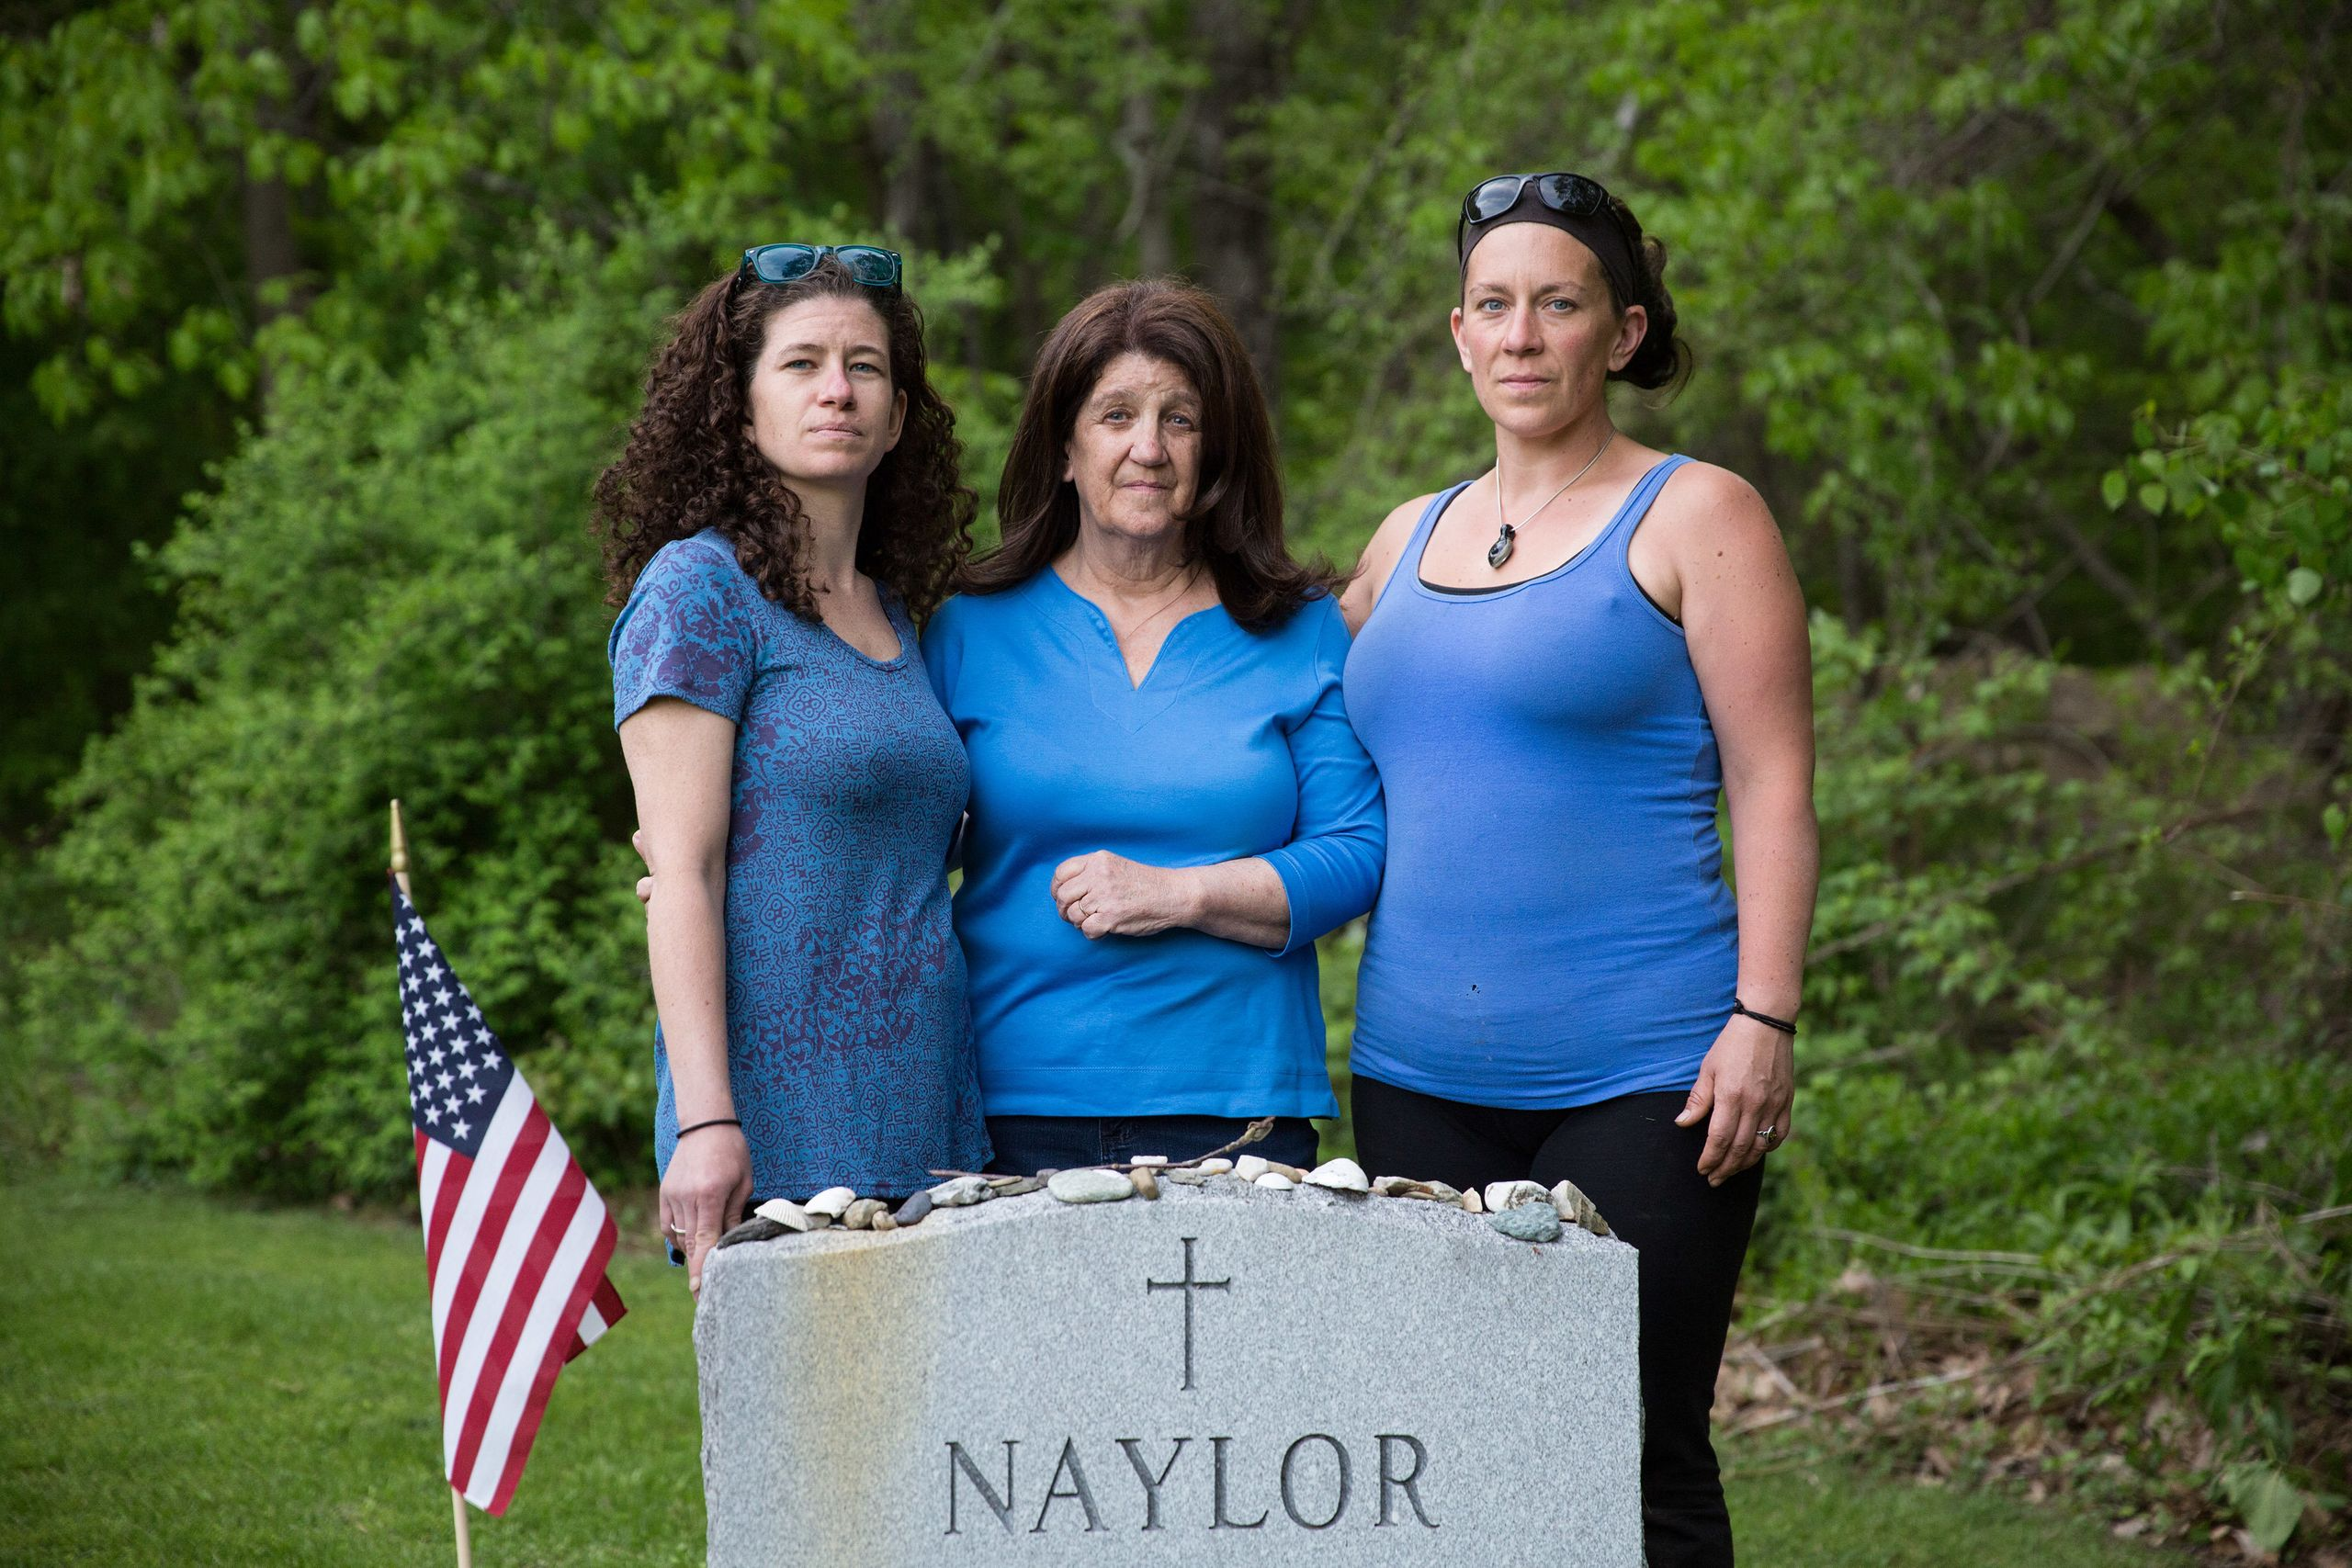 Erin Naylor, Kate Naylor, and Meghan Naylor pose for a portrait during a visit to Pete Naylor's grave in May 2018.